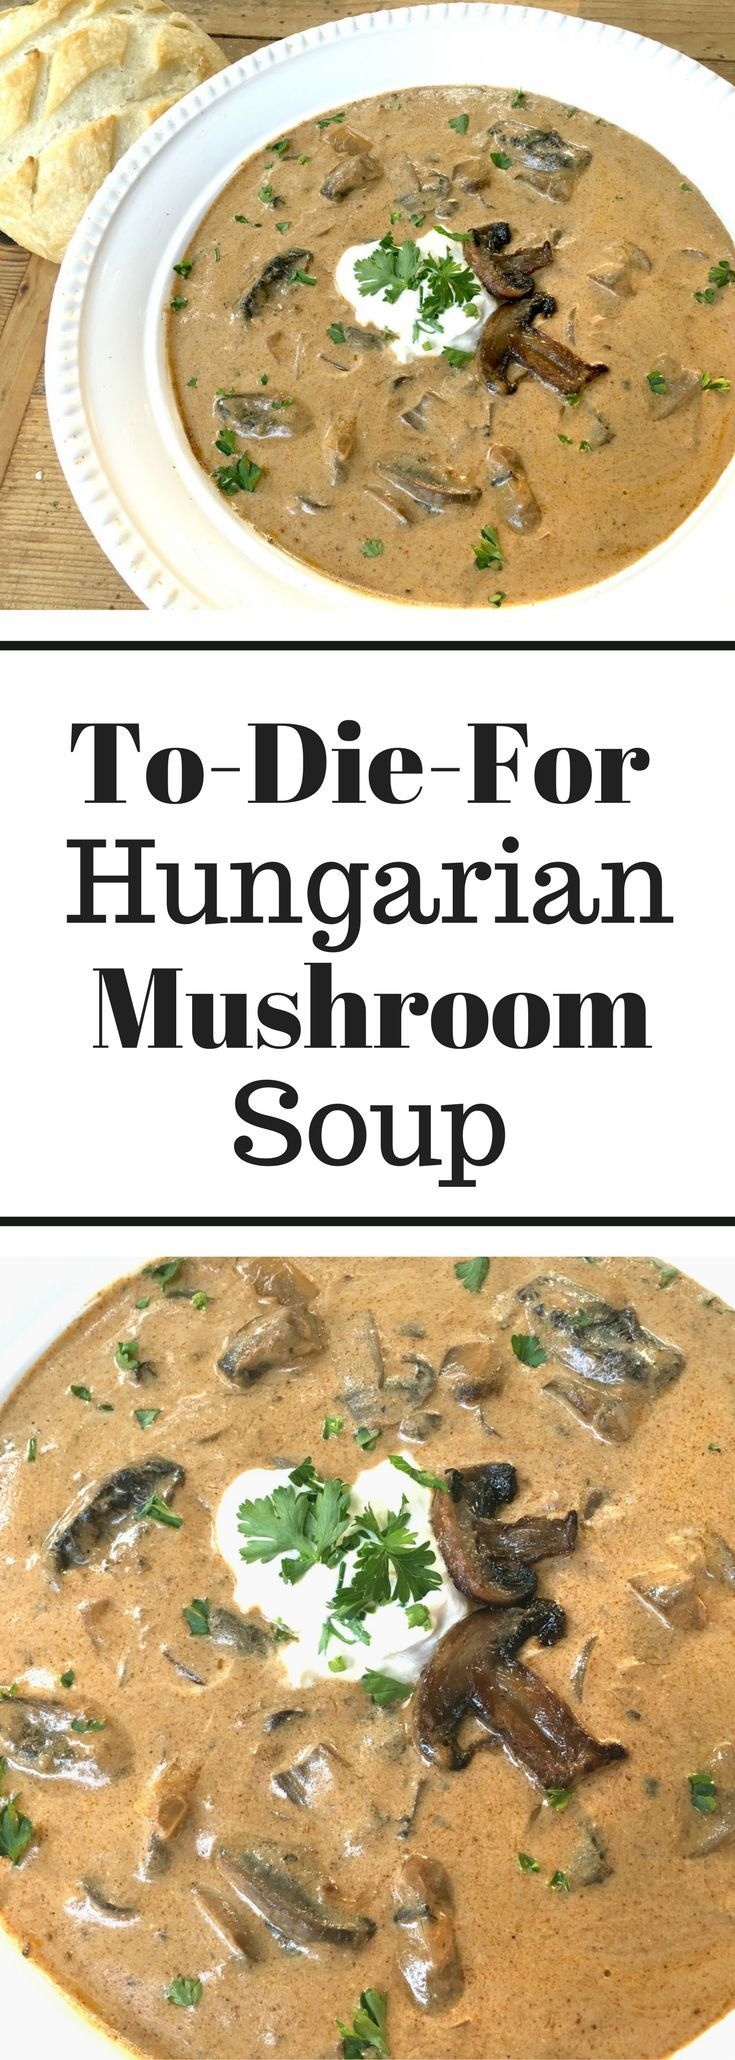 To-Die For Hungarian Mushroom Soup - Delicious!